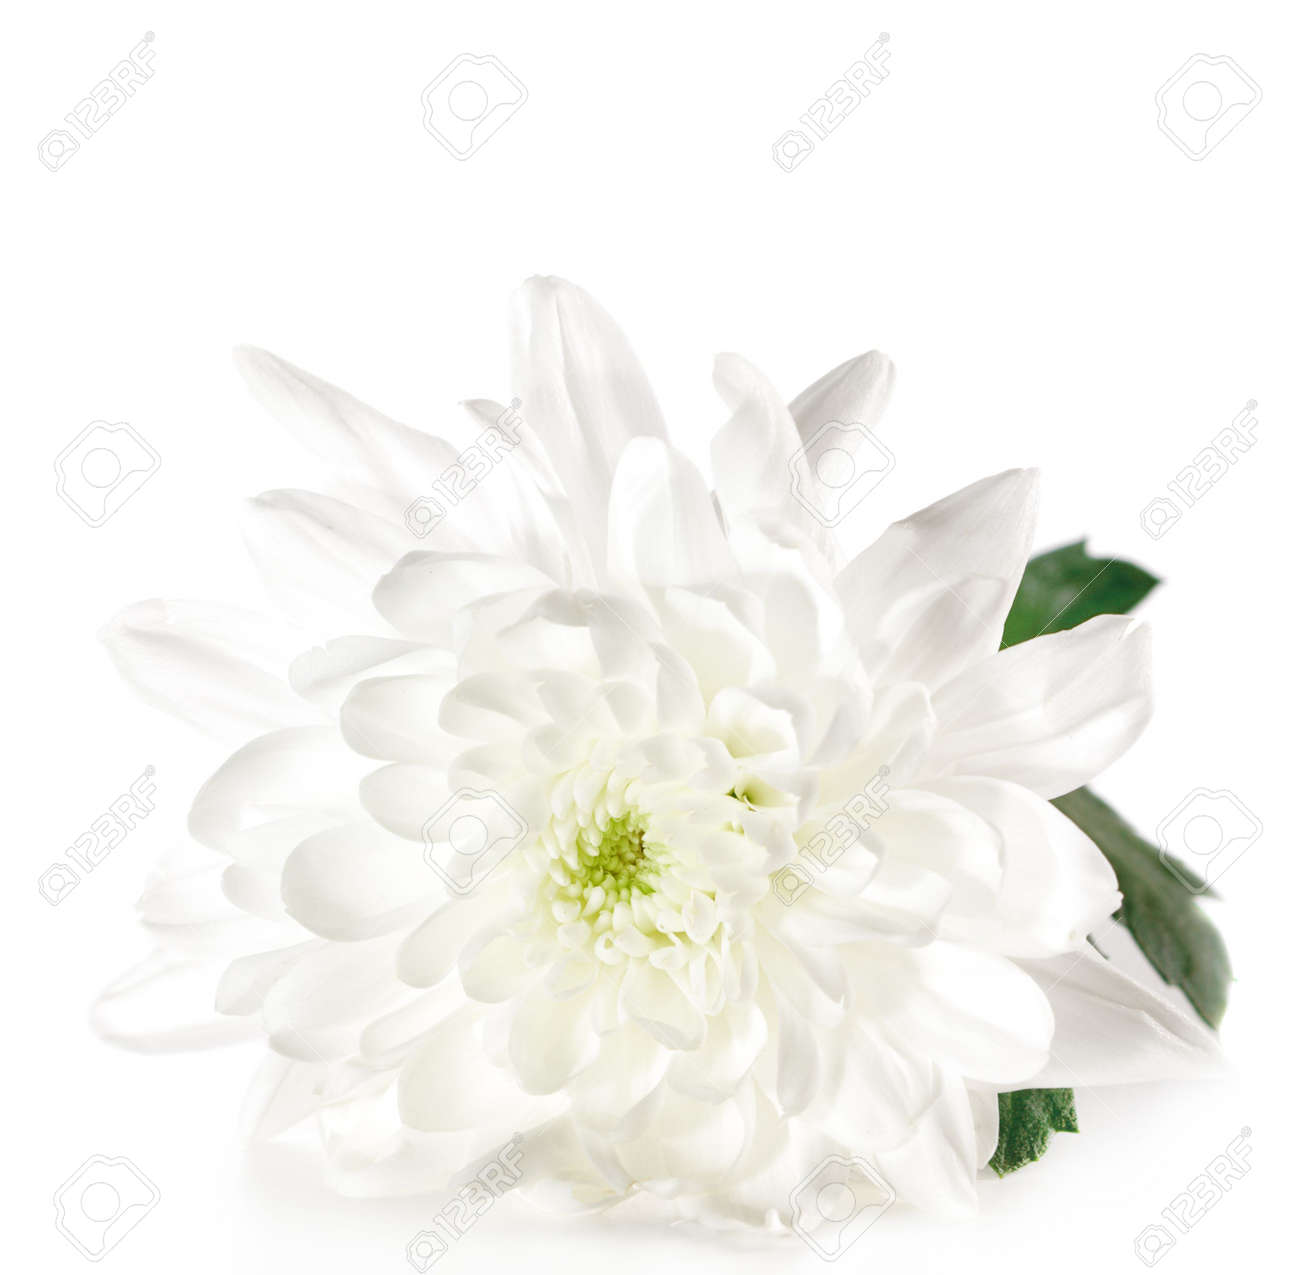 White Flower with Green Leaf Isolated on White Background Stock Photo - 4793442